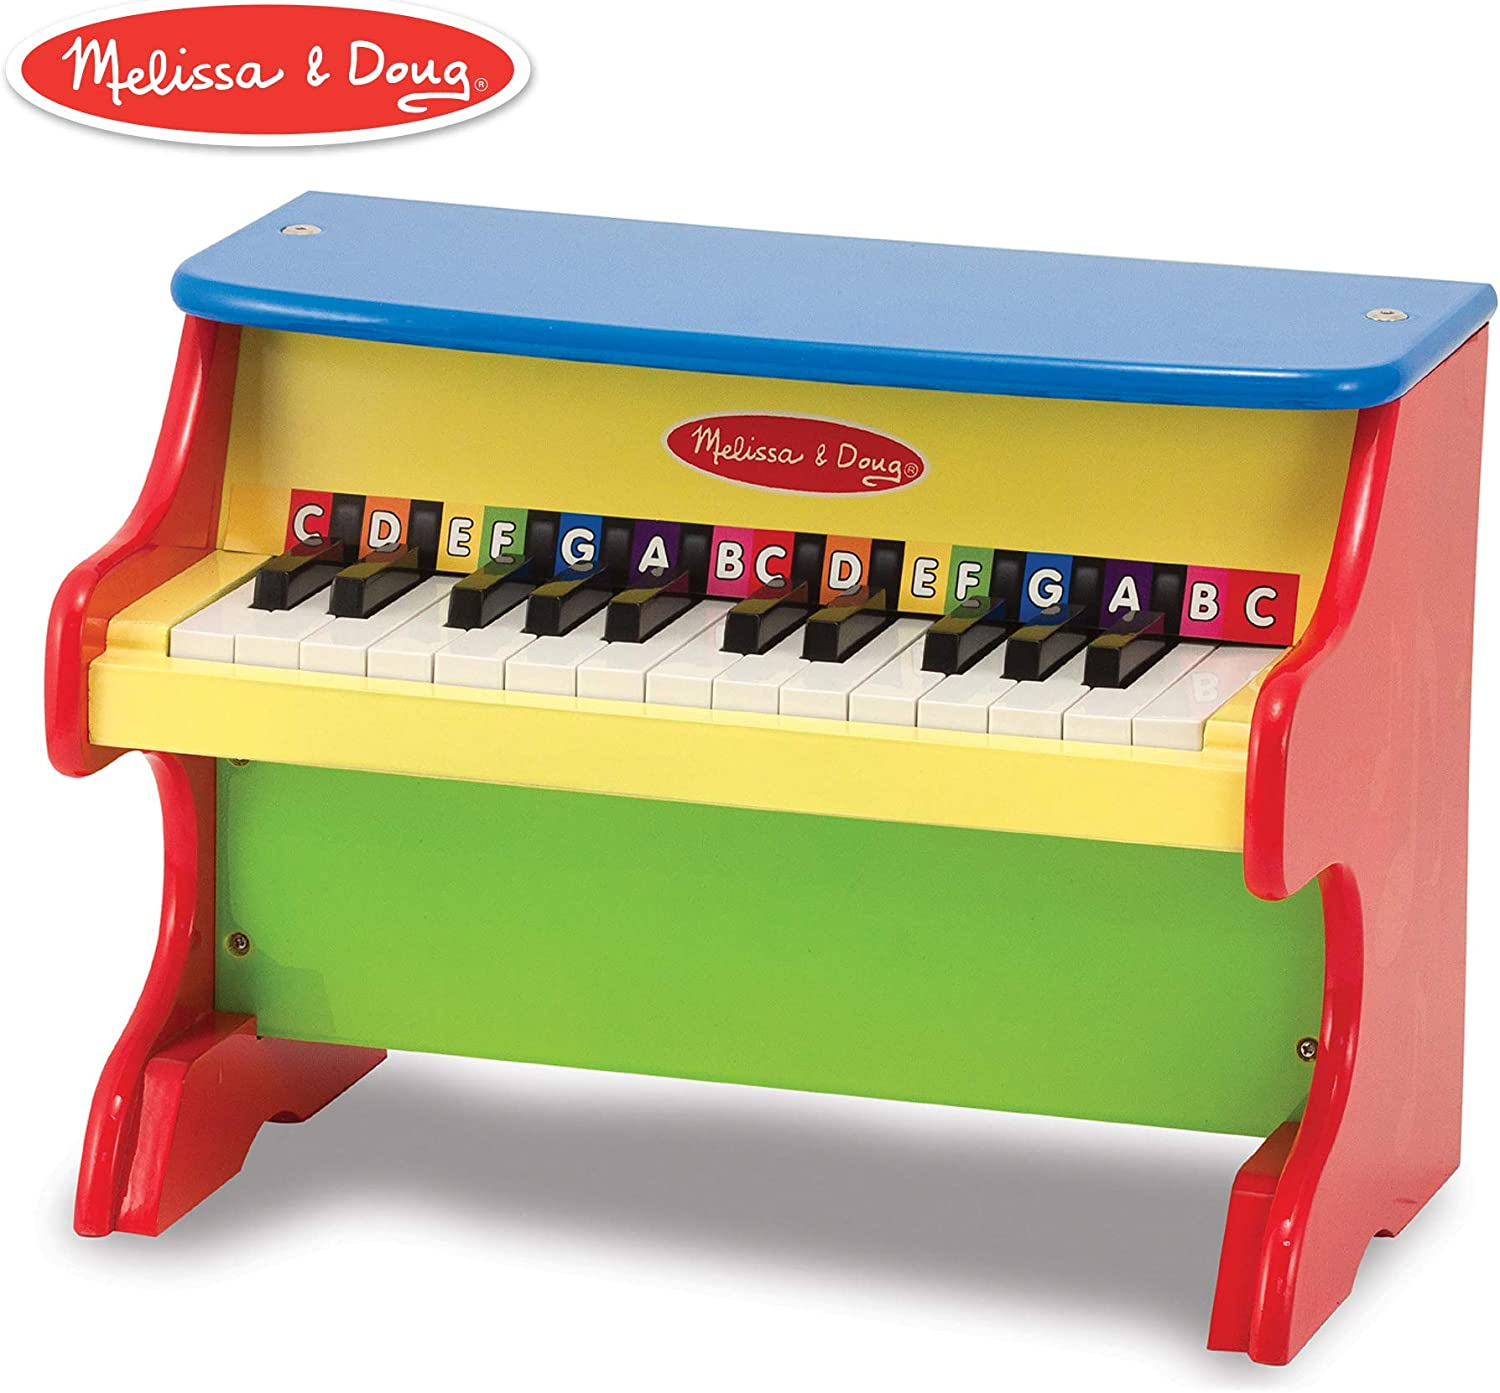 Melissa & Doug LearntoPlay Piano With 25 Keys and colorCoded Songbook of 9 Songs